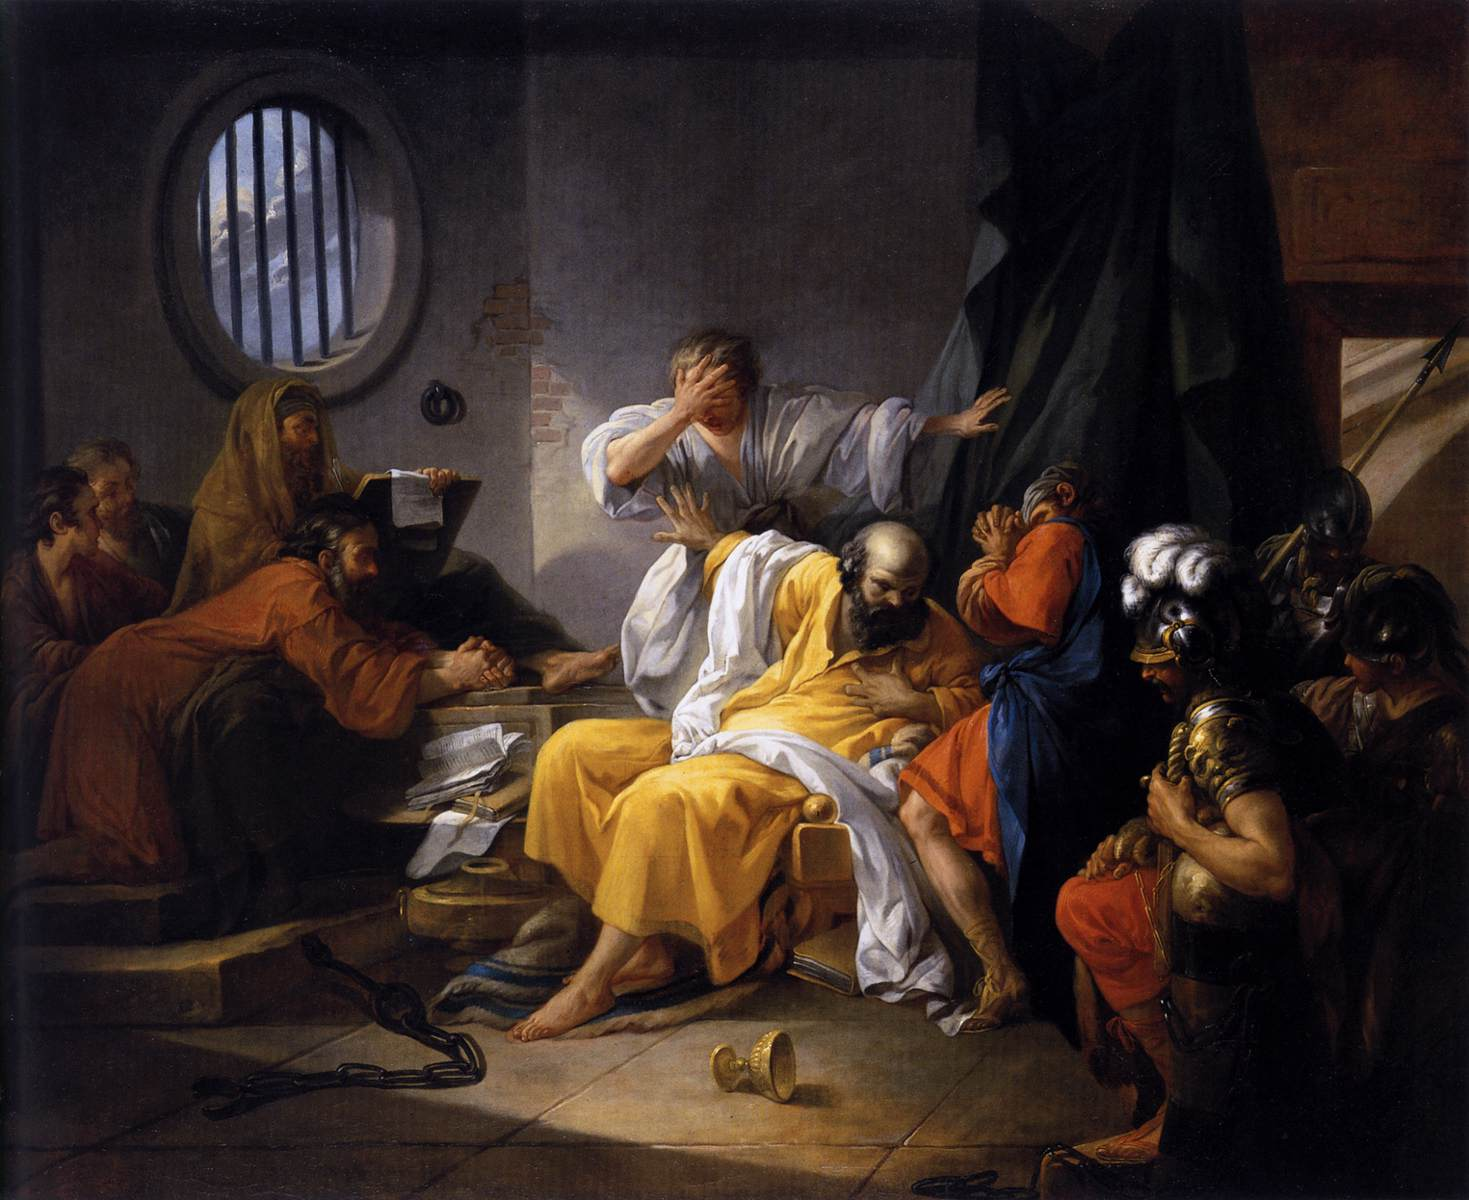 an analysis of the wrongful conviction of socrates by the athenian court